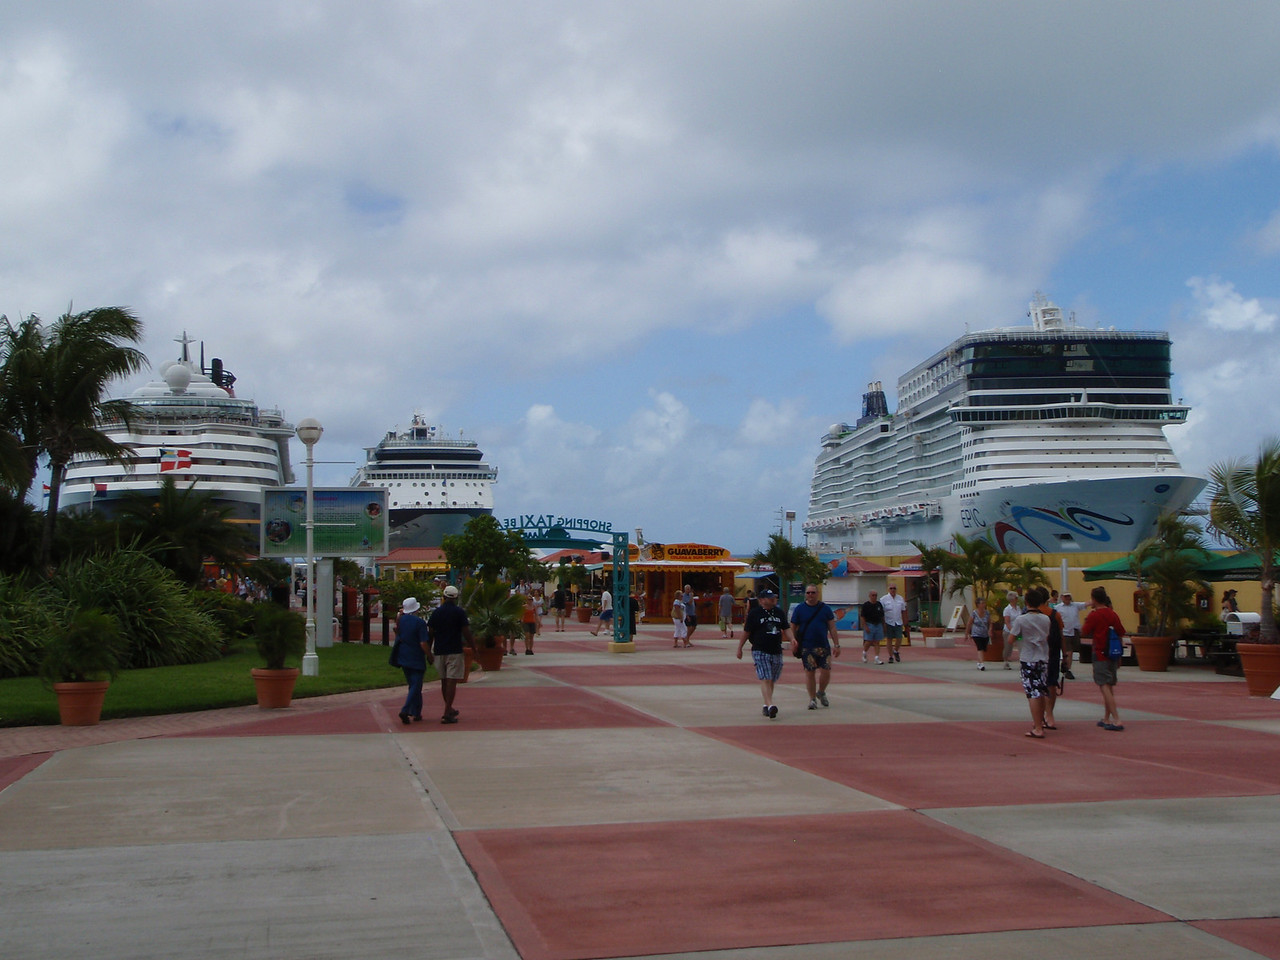 Looking back towards the ships.